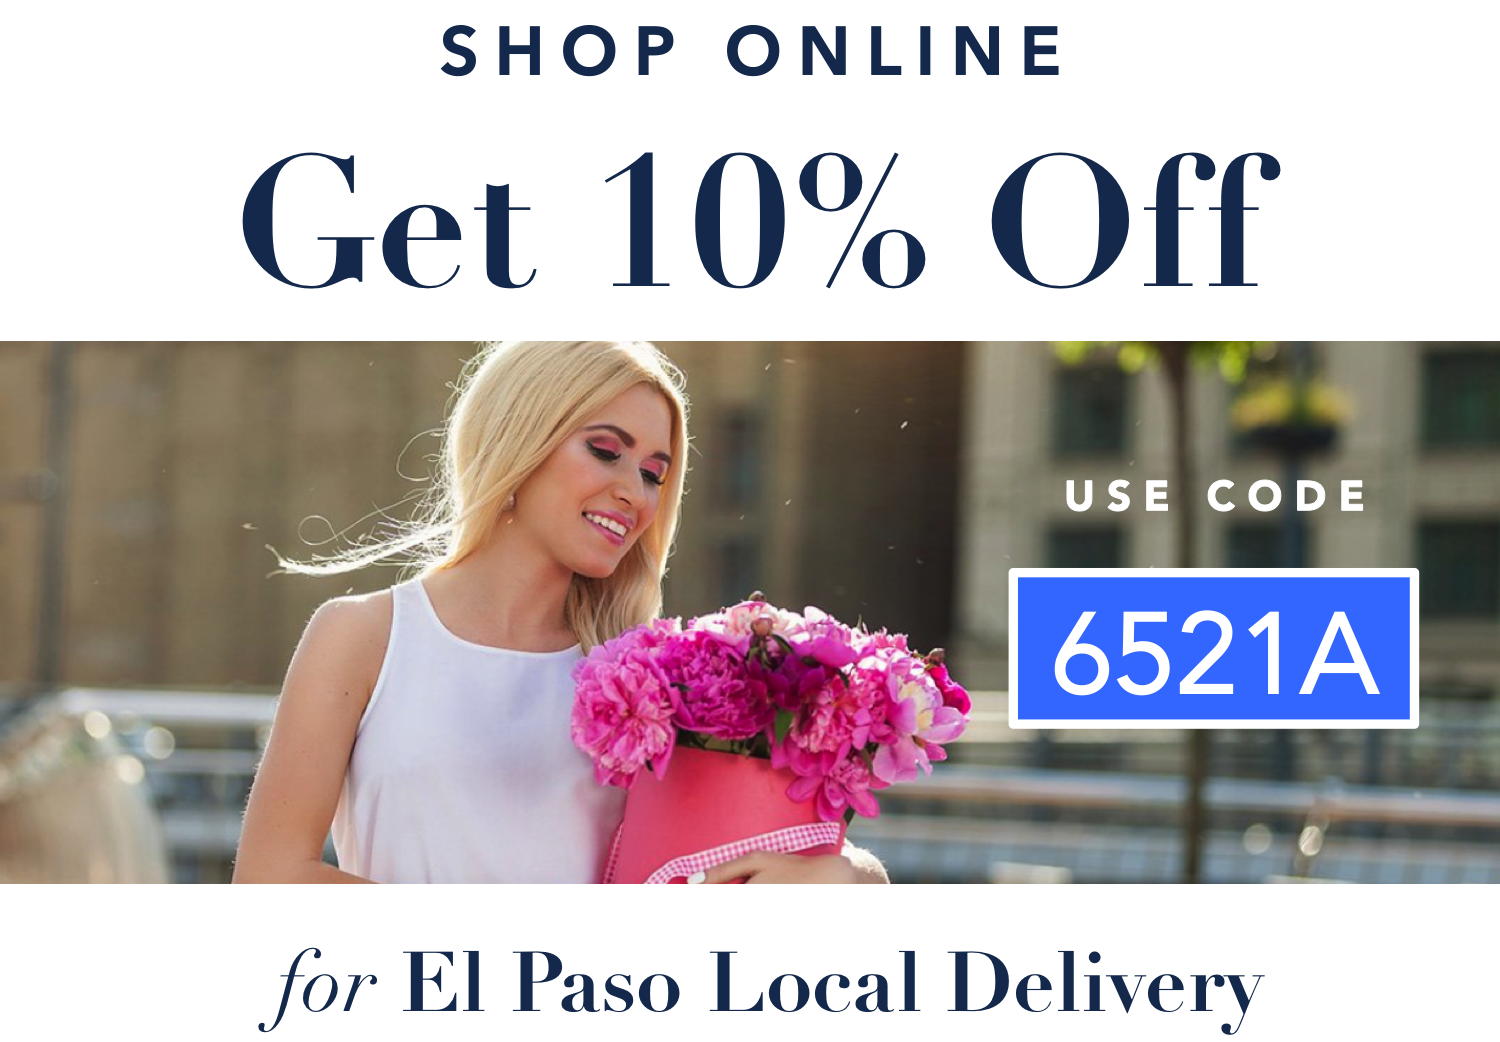 angies-floral-designs-1-el-paso-flowers-weddings-el-paso-florist-flowershop-79912-angies-flower-el-paso-texas-flowershop-roses-wedding-events-.png